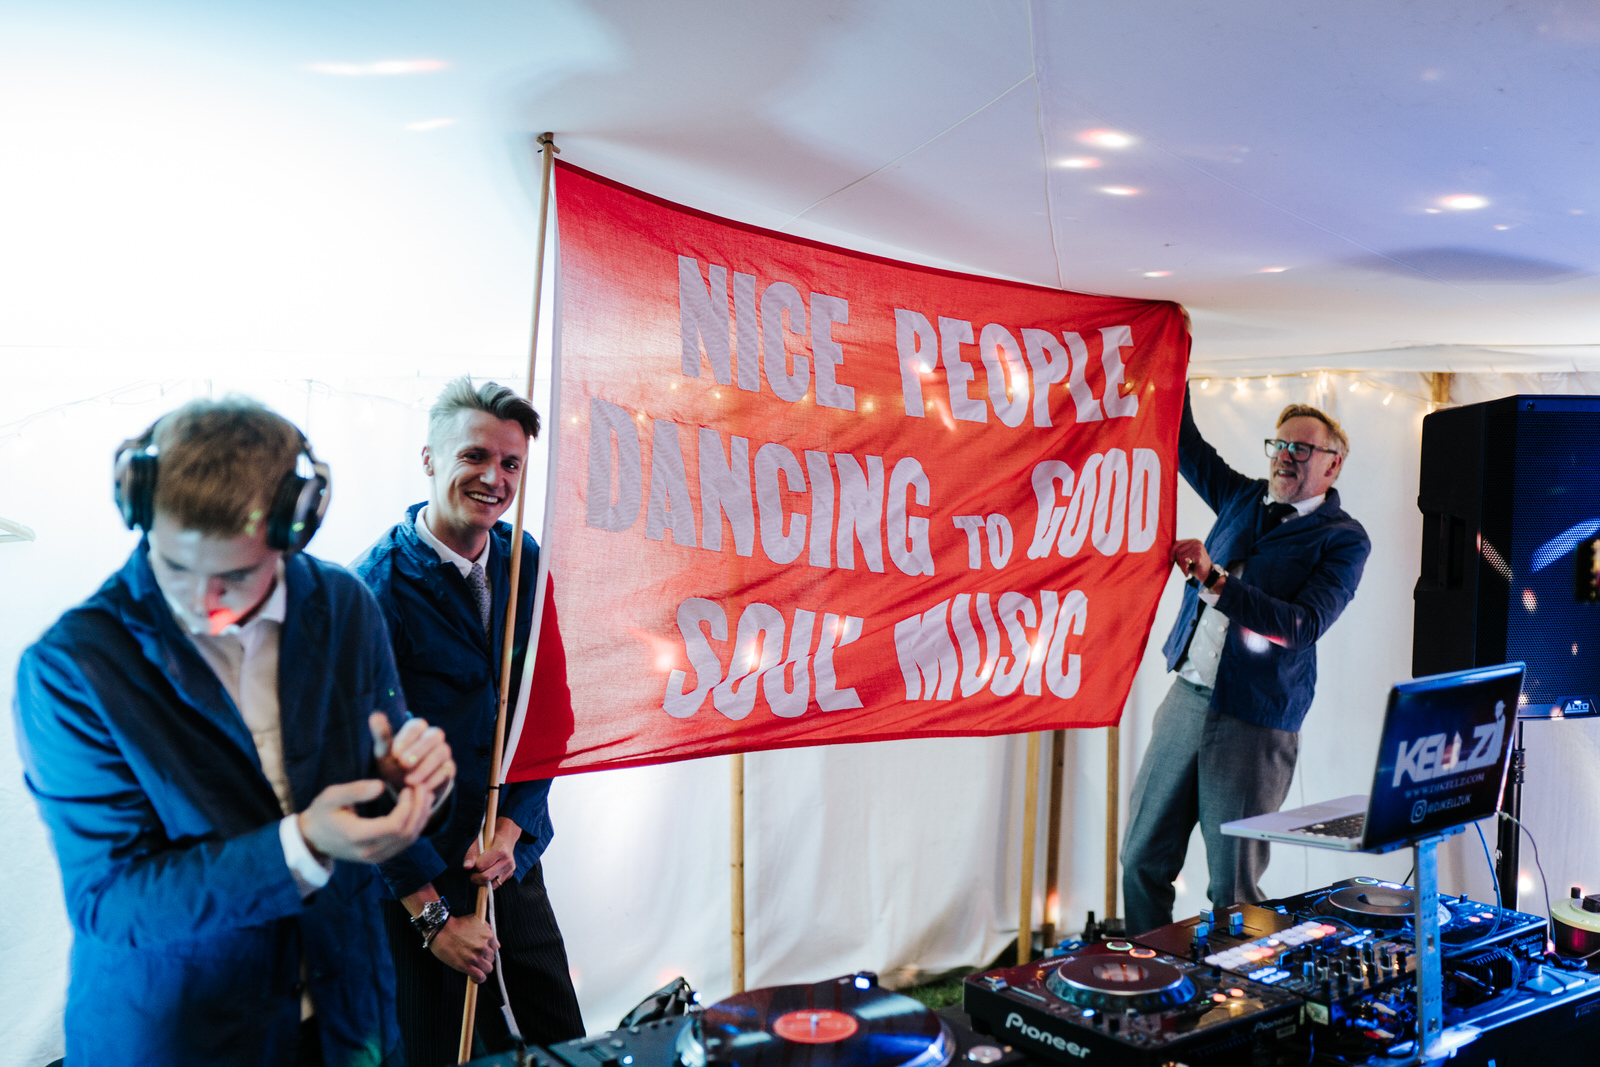 DJs waving big red flag that reads nice people dancing to good soul music